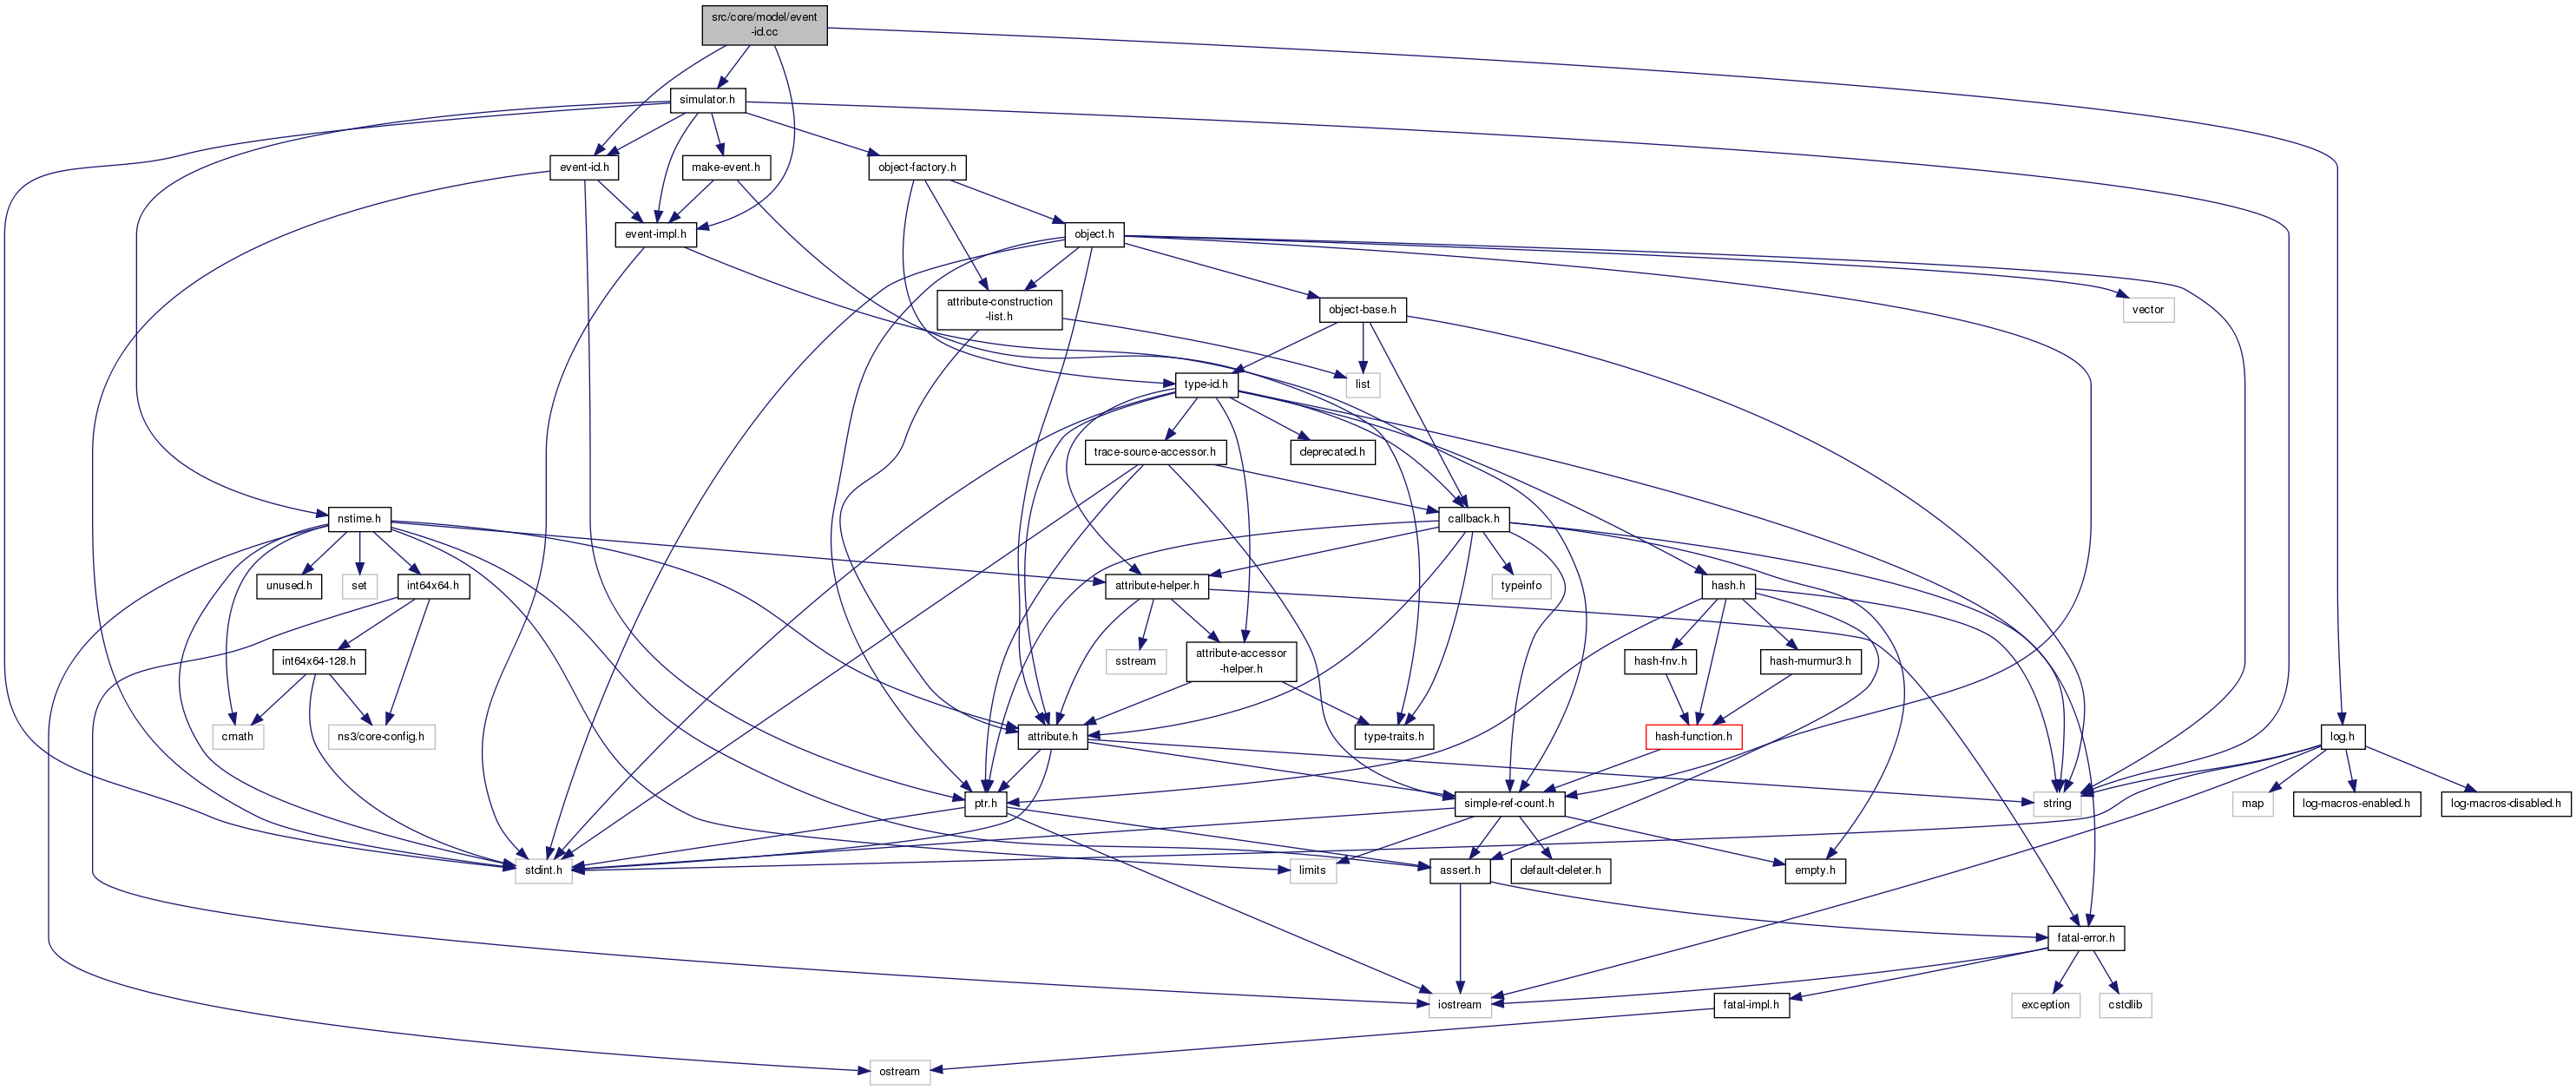 ns-3: src/core/model/event-id.cc File Reference